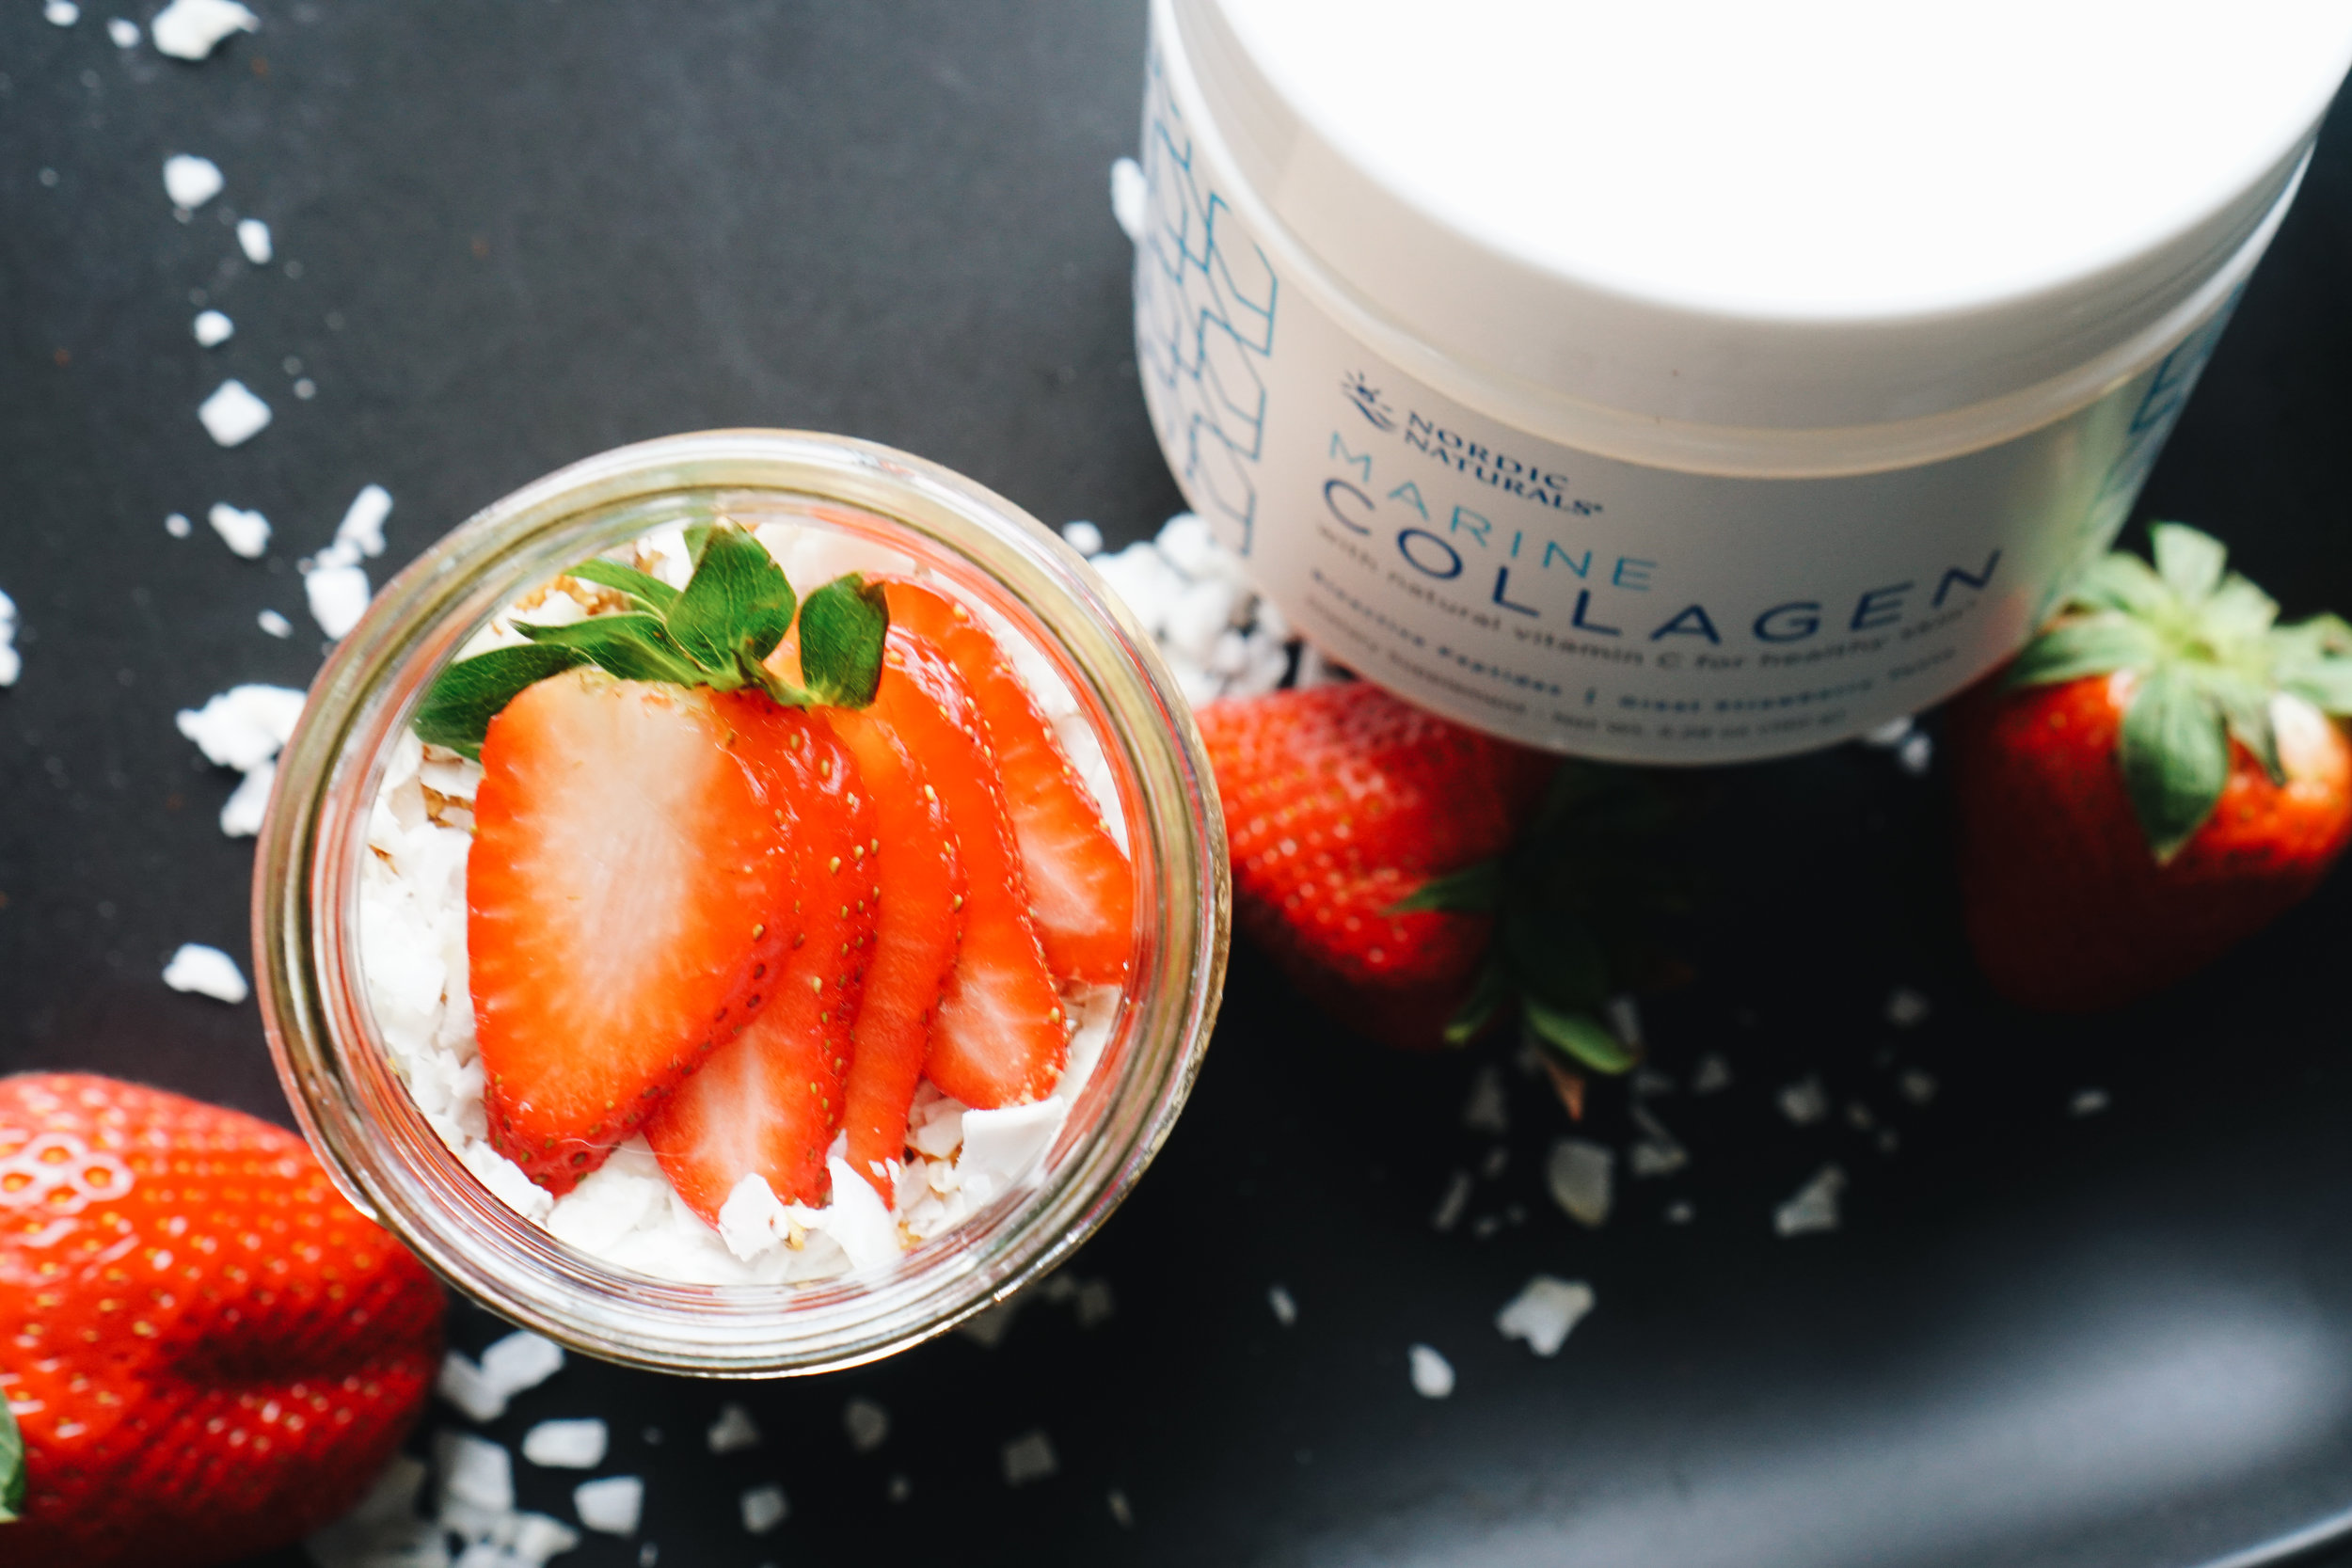 Nordic Naturals Collagen Strawberry Fields Collagen Chia Pudding  - healthy meals, gluten free, keto friendly, low carb - www.letsregale.com _ 7.jpg